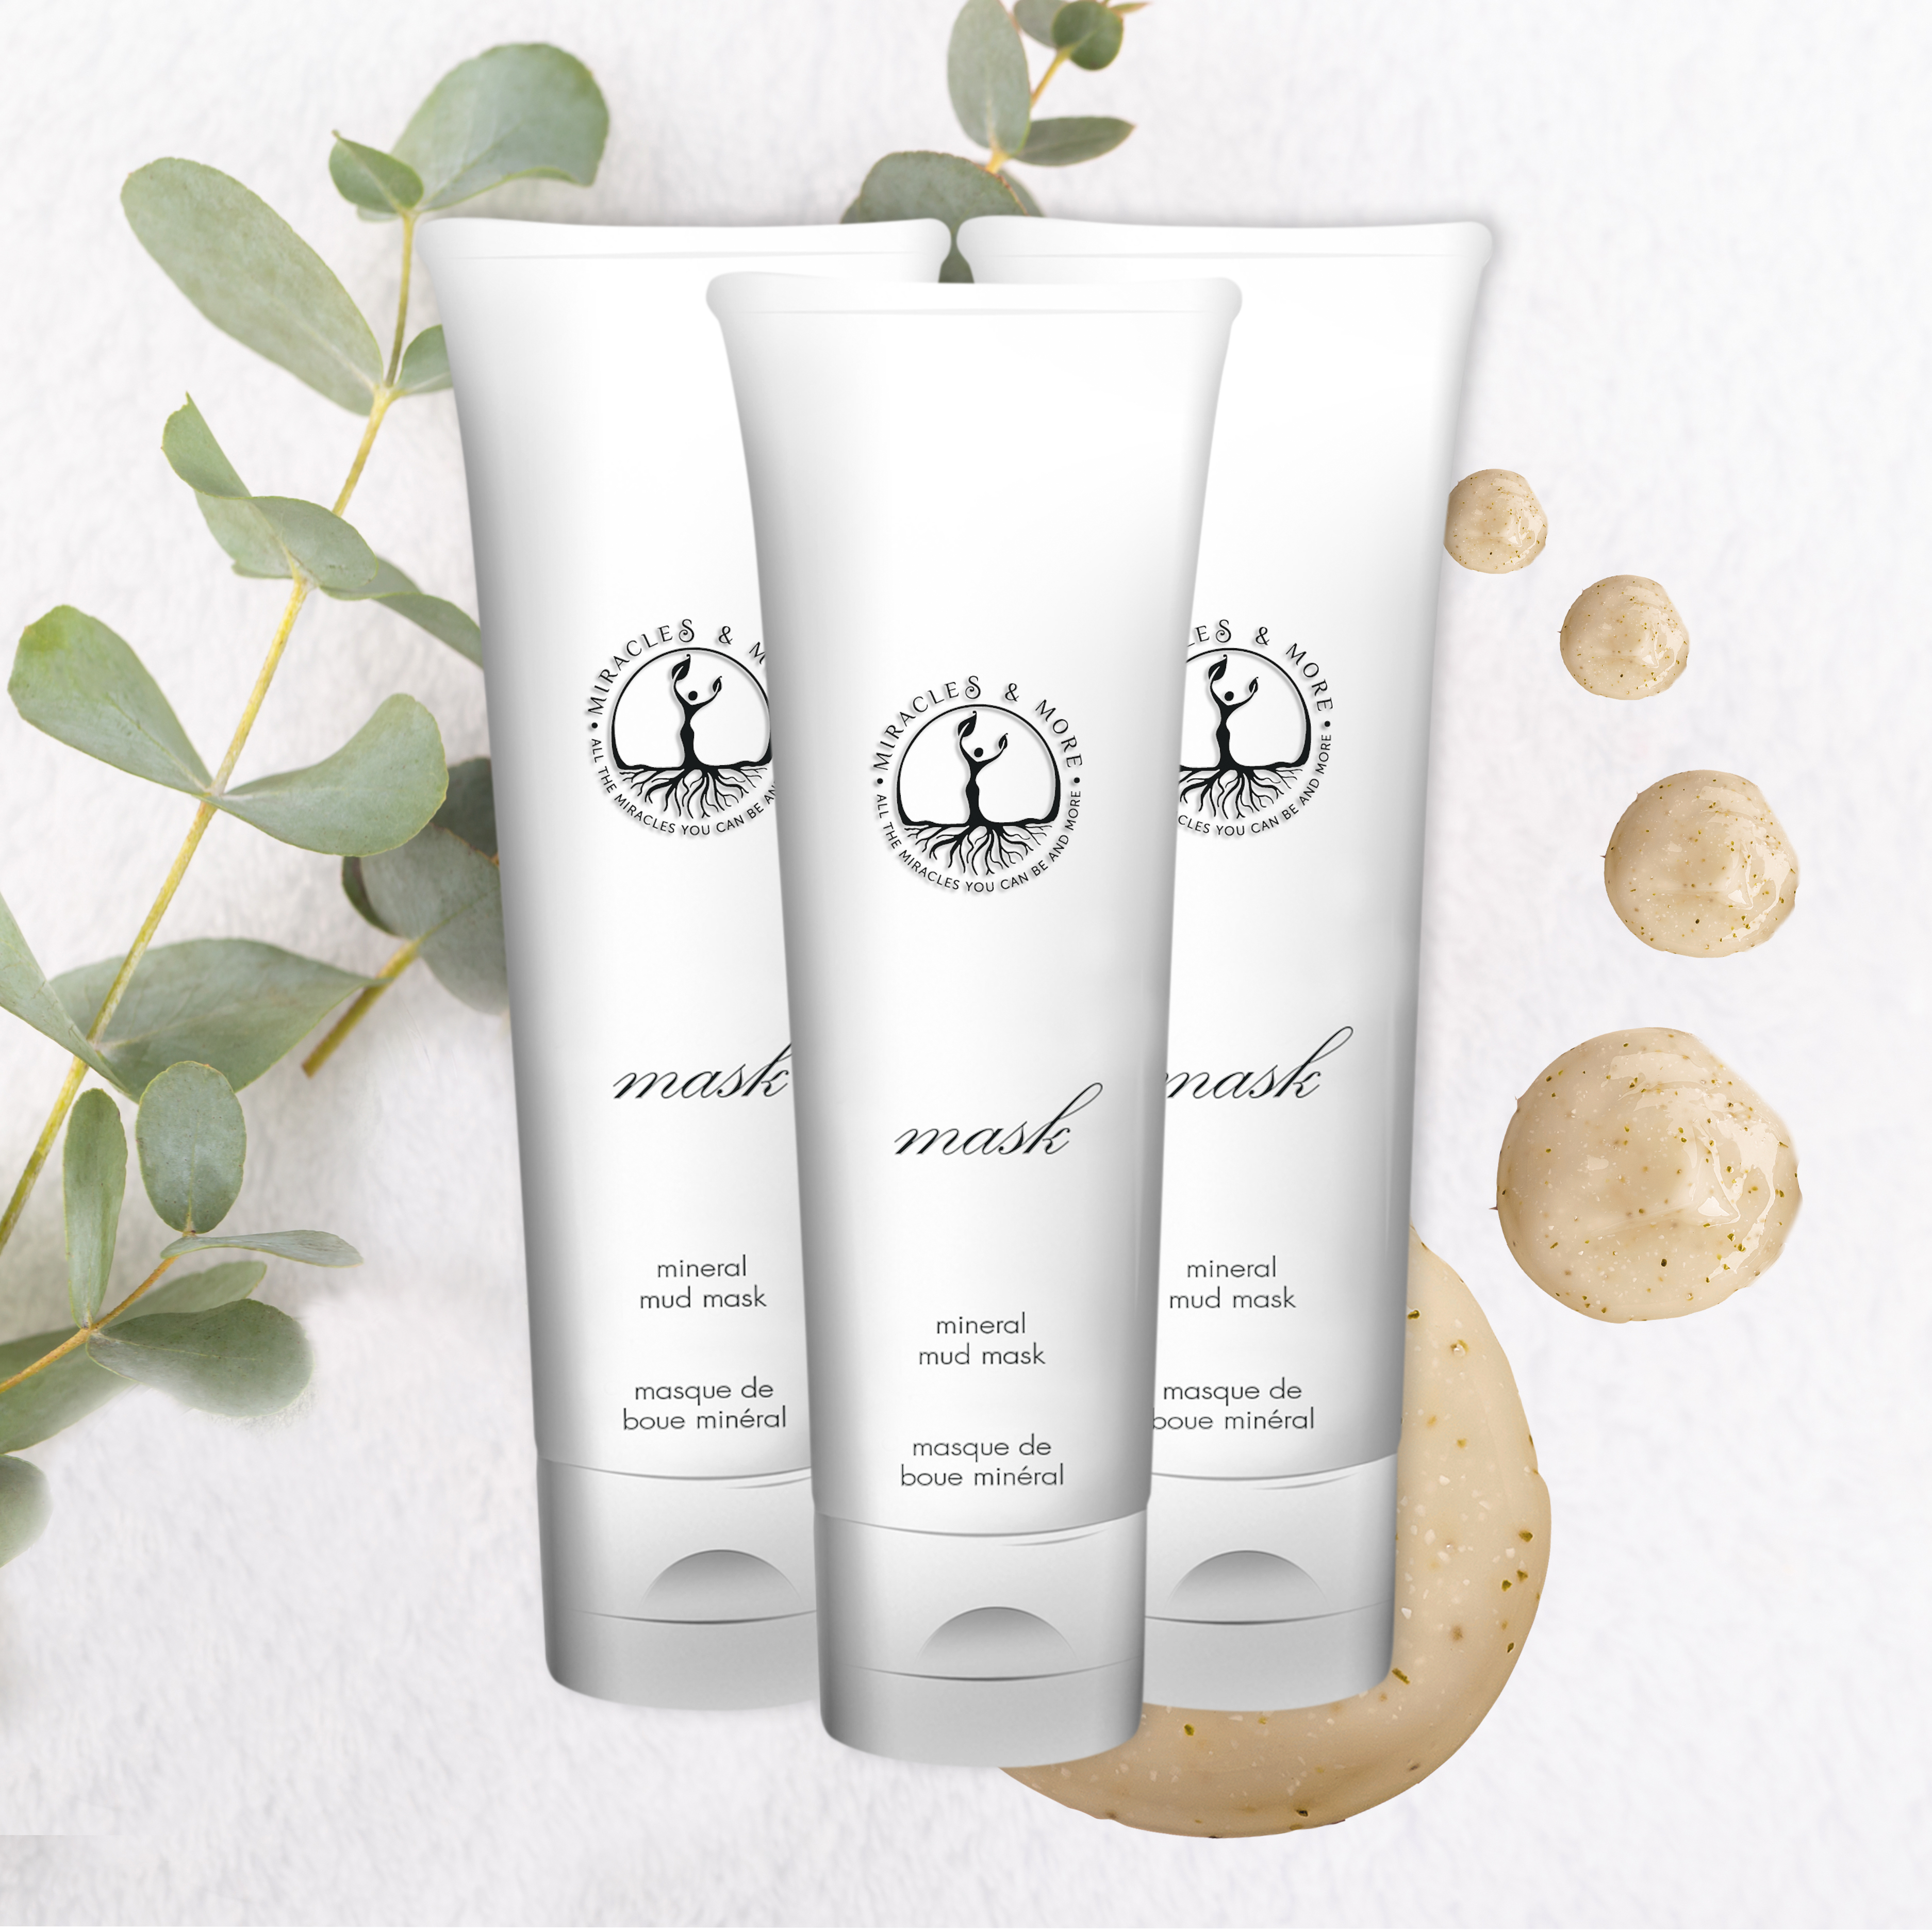 4.For Mineral Mud Mask